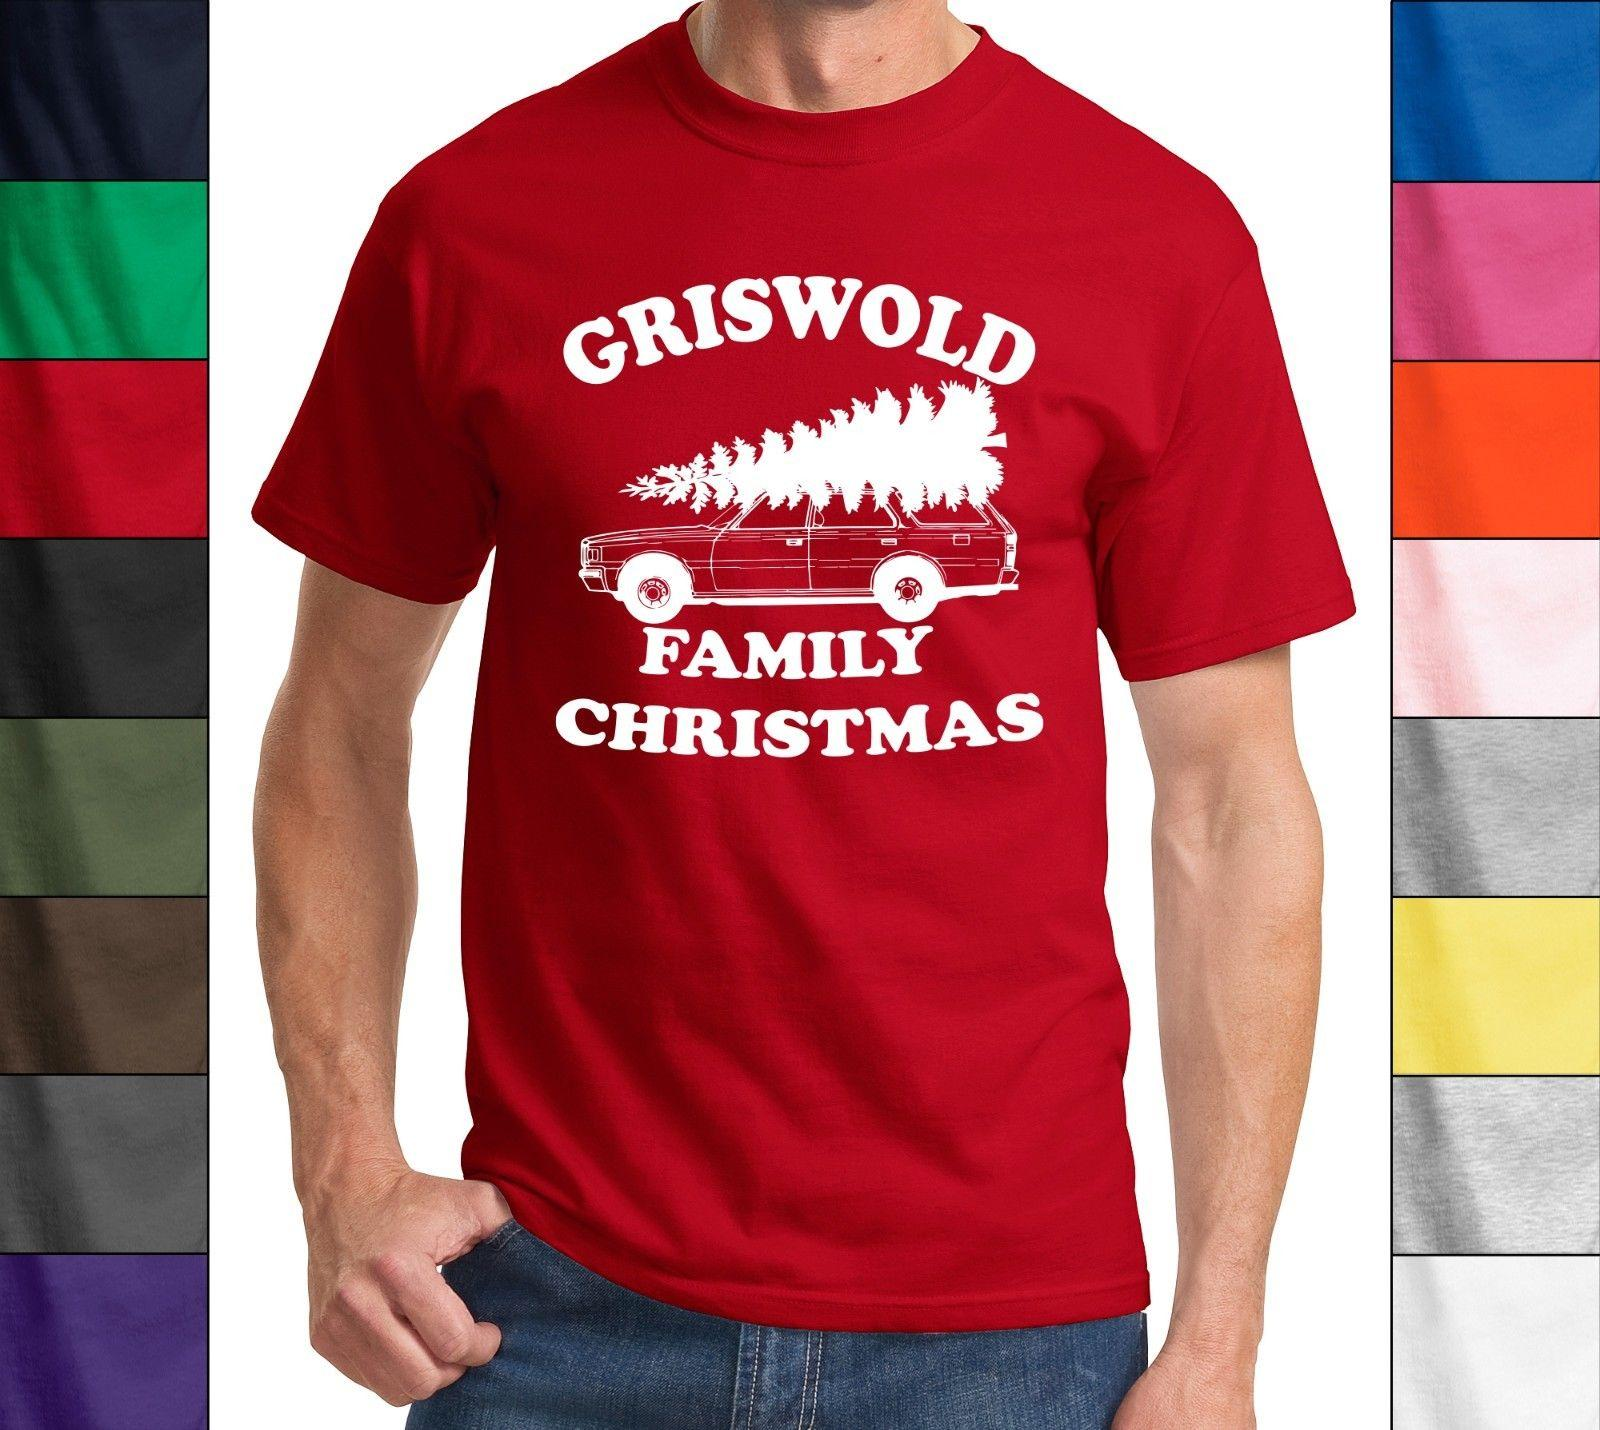 a5dcc84db Griswold Family Christmas Funny T Shirt Clark Griswold Xmas Tree Holiday  Tee Funny Unisex Casual Tee Gift Of T Shirt T Shirt On From Elite_direct,  ...